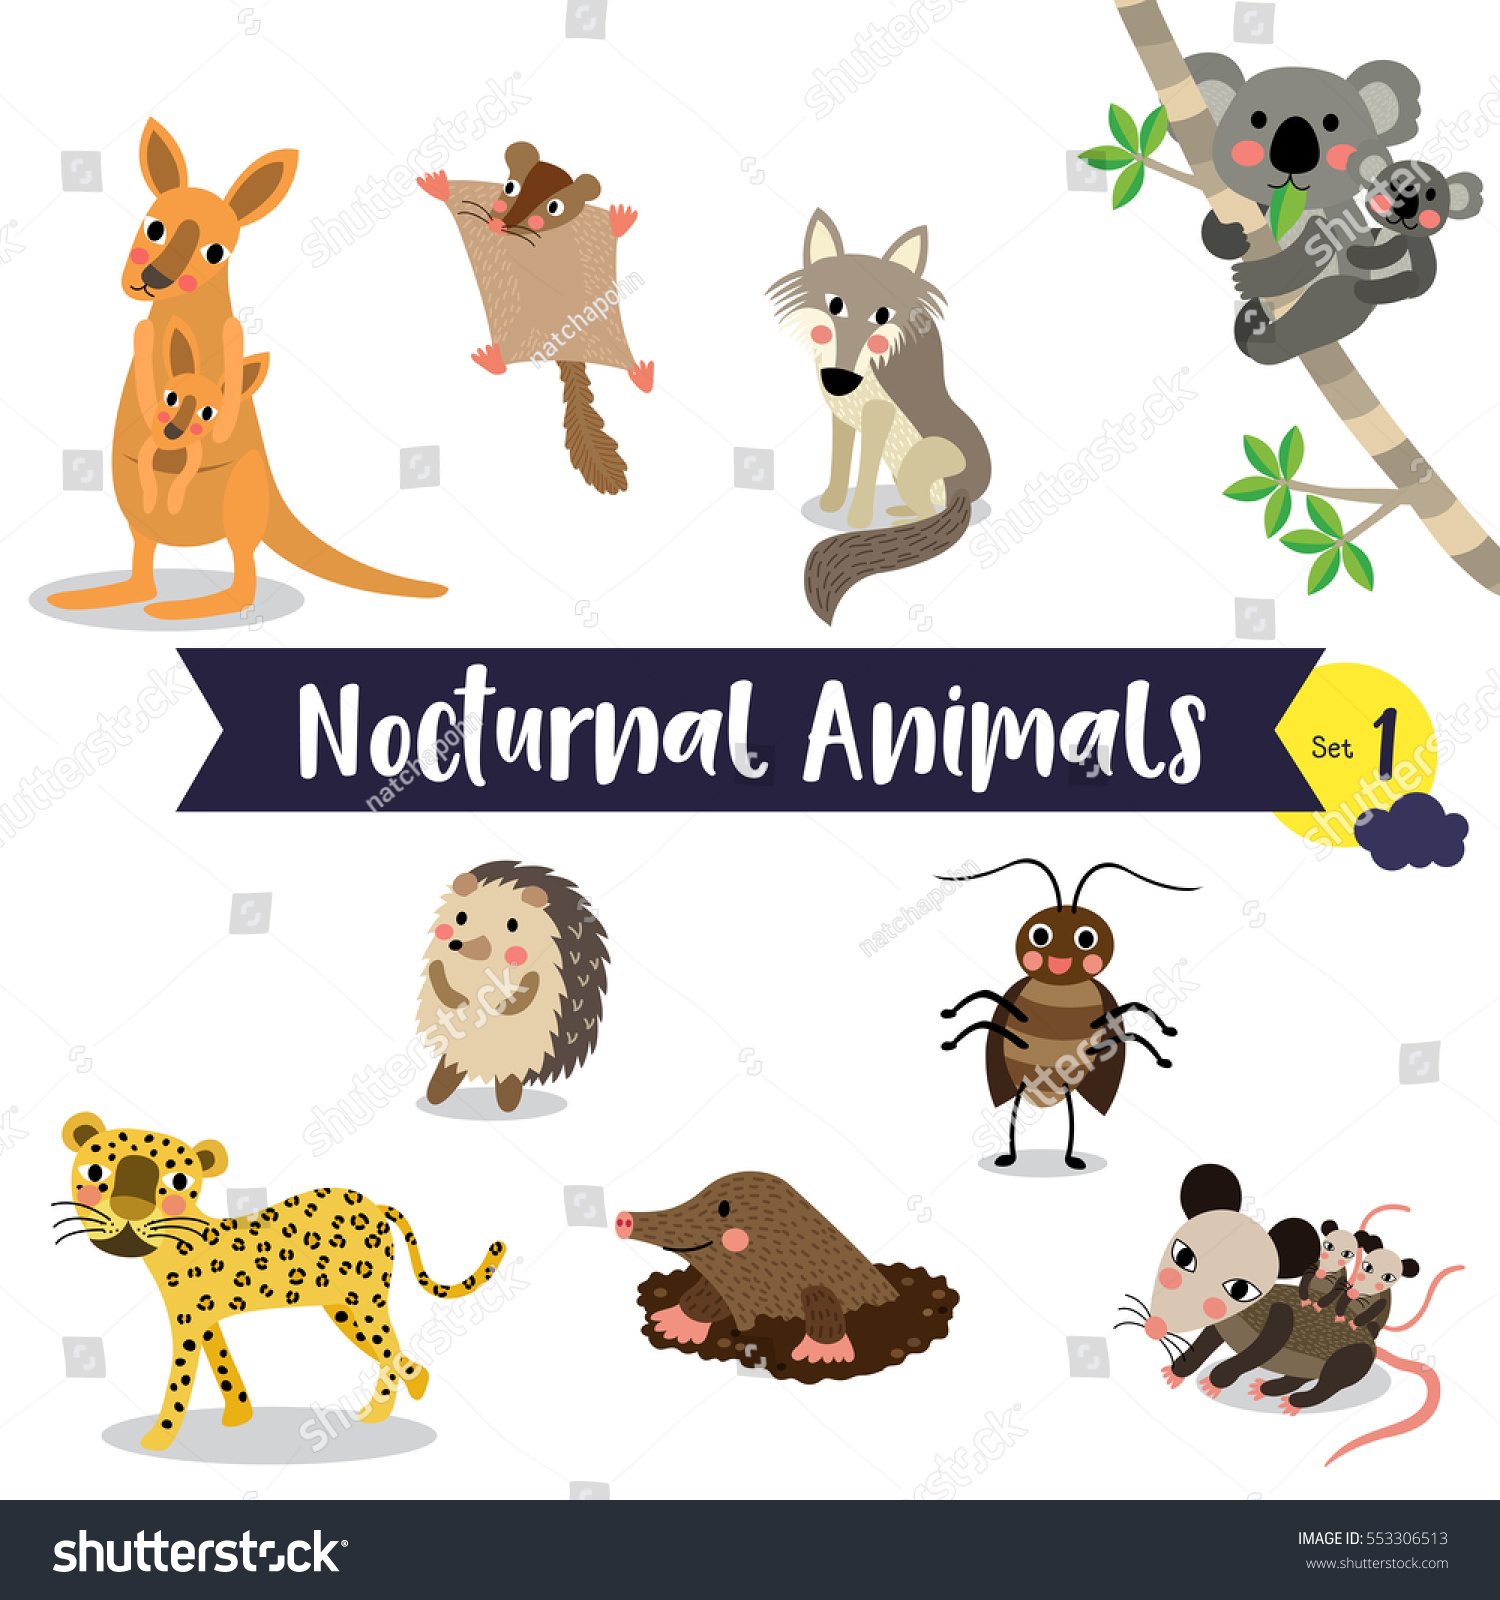 Nocturnal Animals Cartoon On White Background Stock Vector